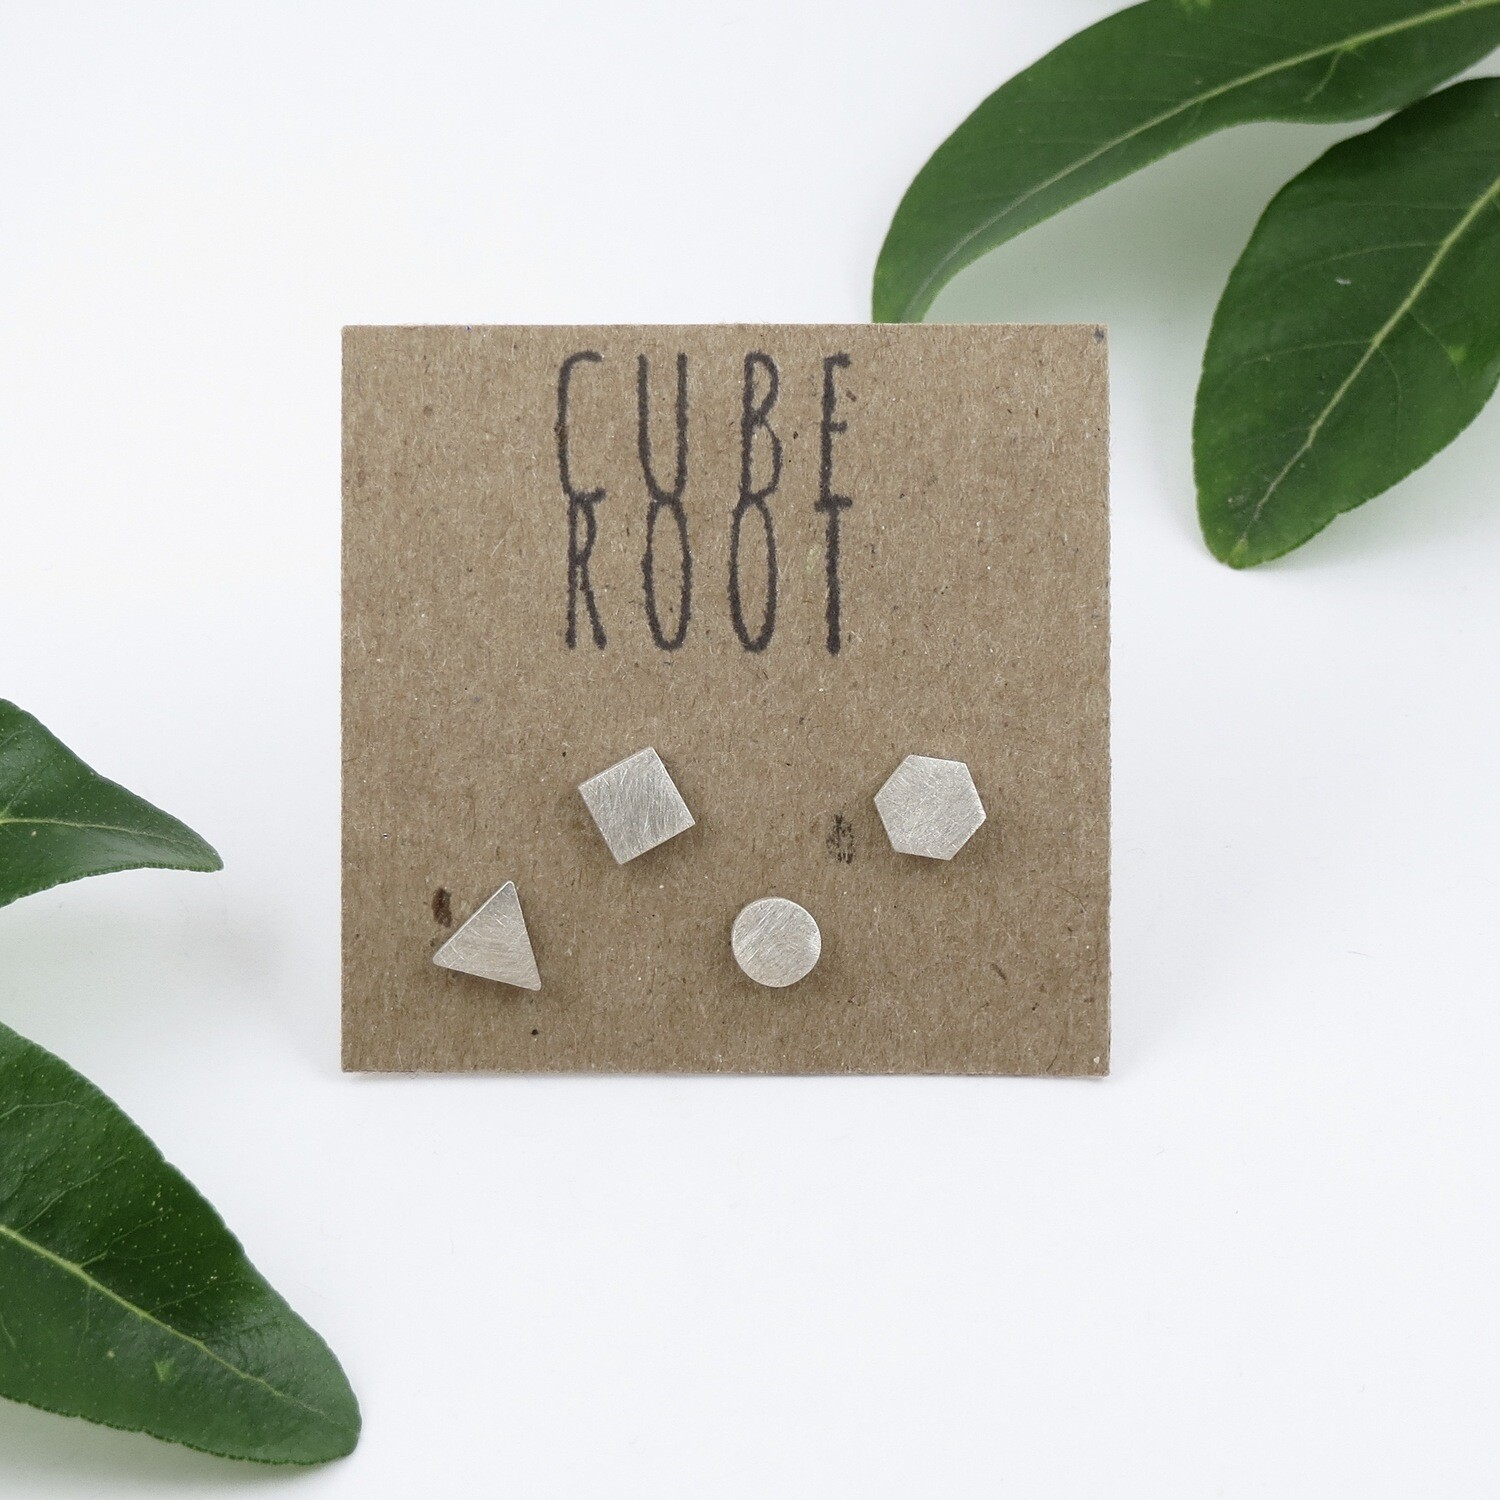 4 Mismatch Silver studs by Cube Root Jewellery